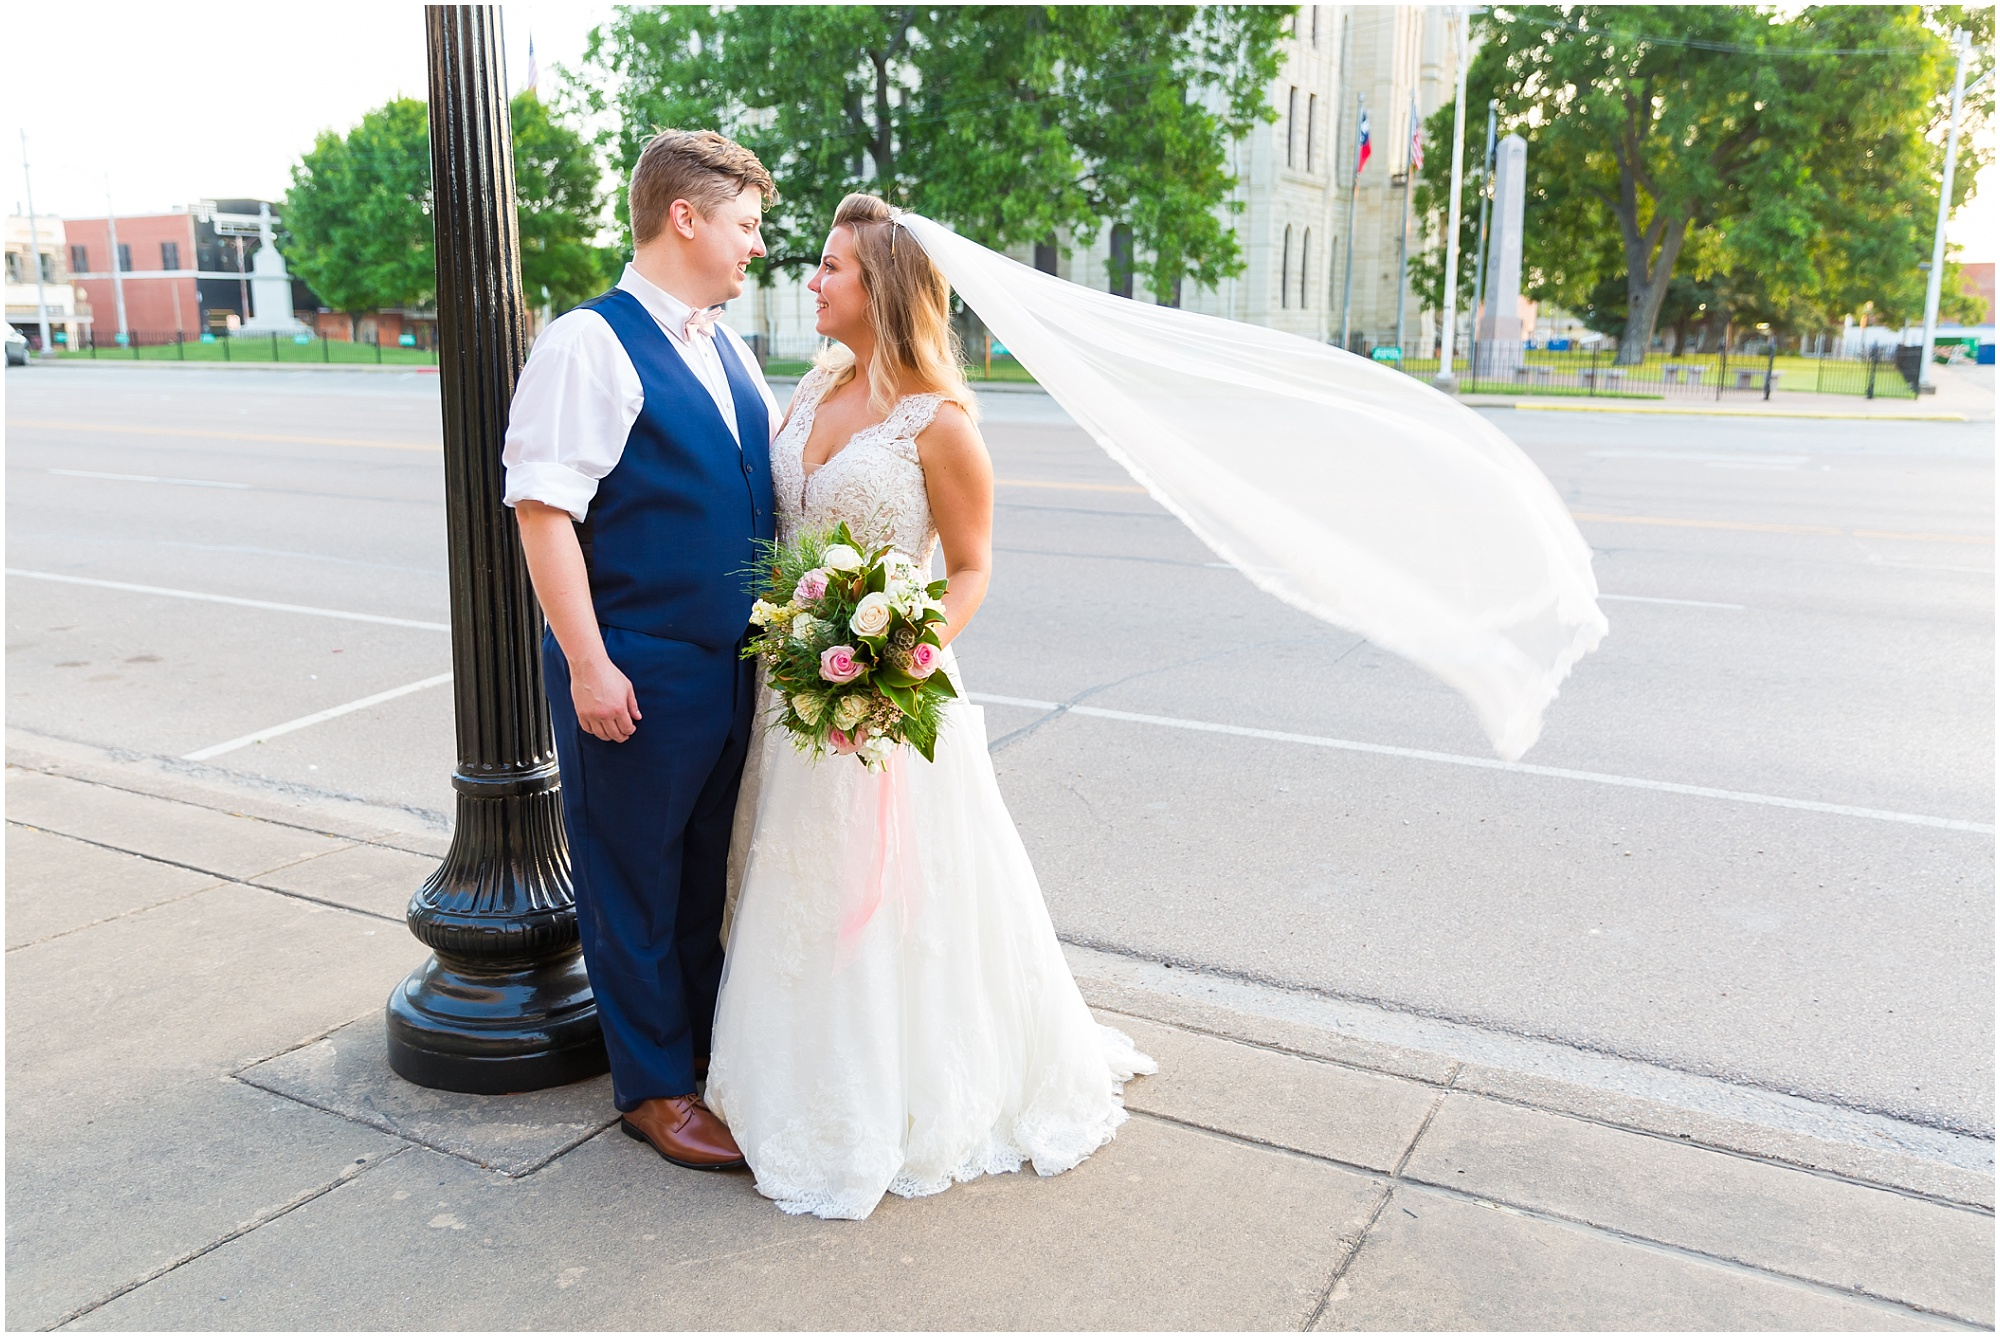 A bride and groom smile at one another as the wind catches the brides veil in downtown Hillsboro, Texas - Jason & Melaina Photography - www.jasonandmelaina.com